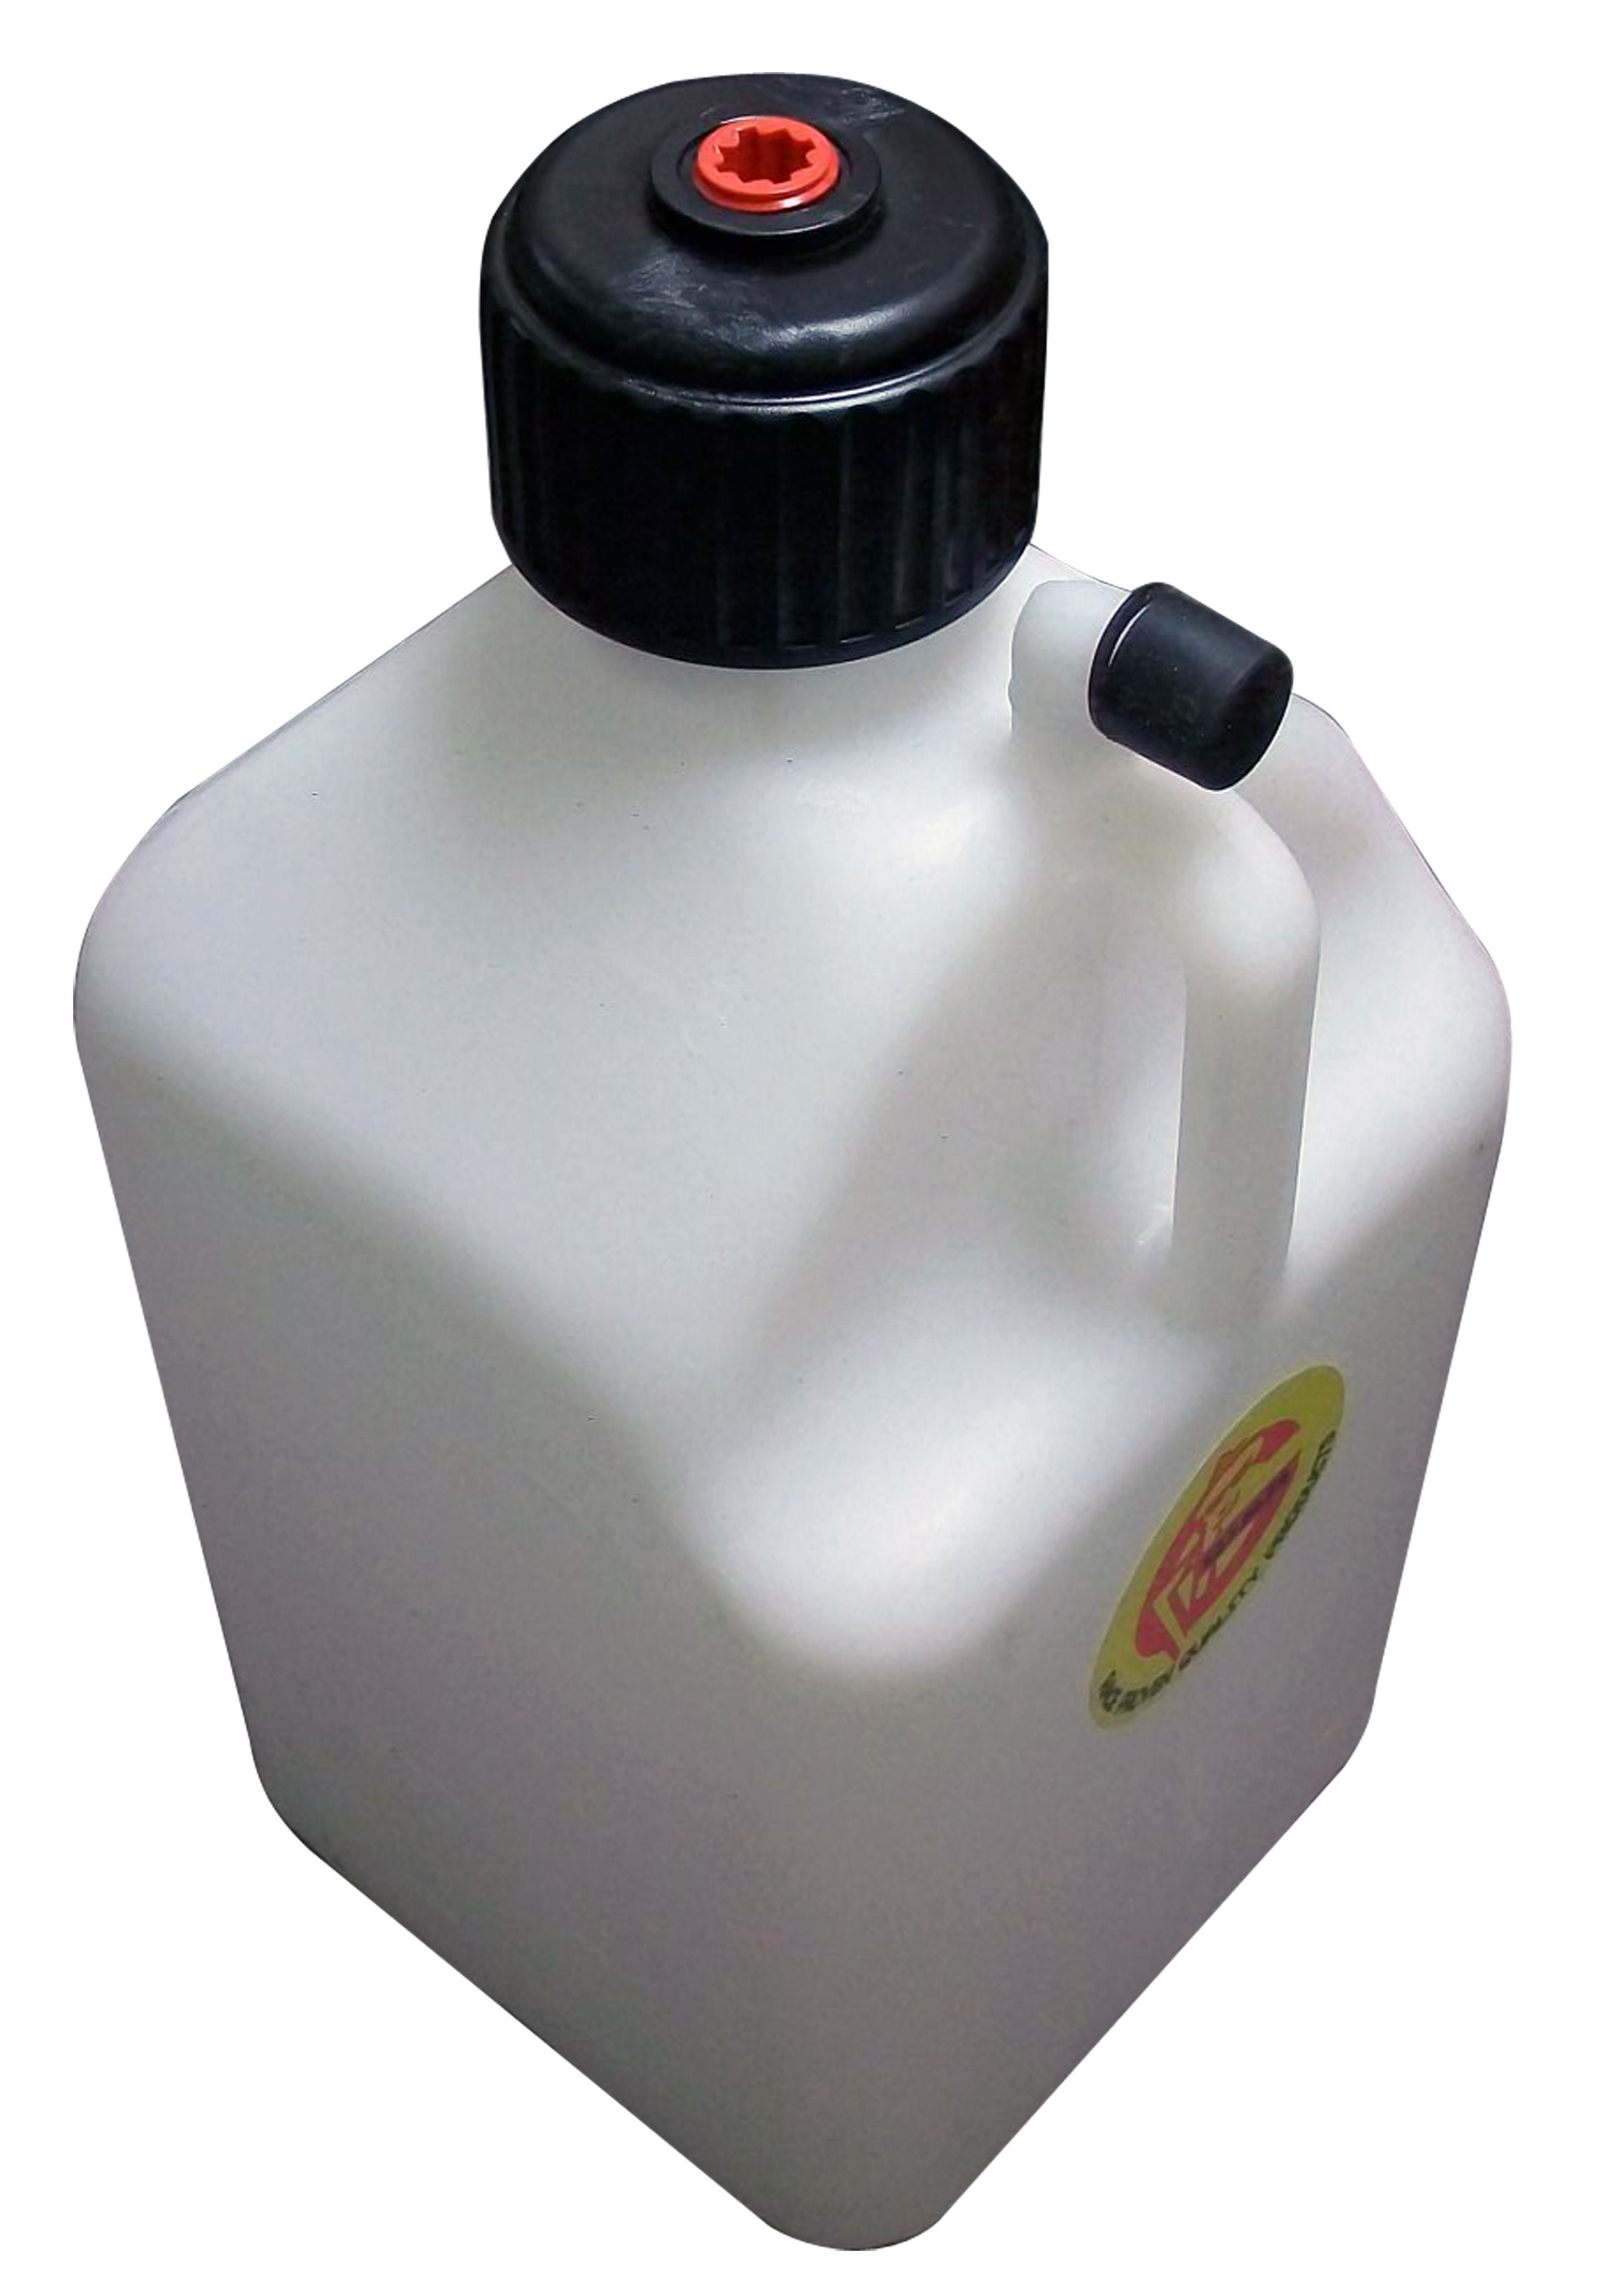 Out Of Stock 5 Gal Fuel Jug 660090 30800 Bmi